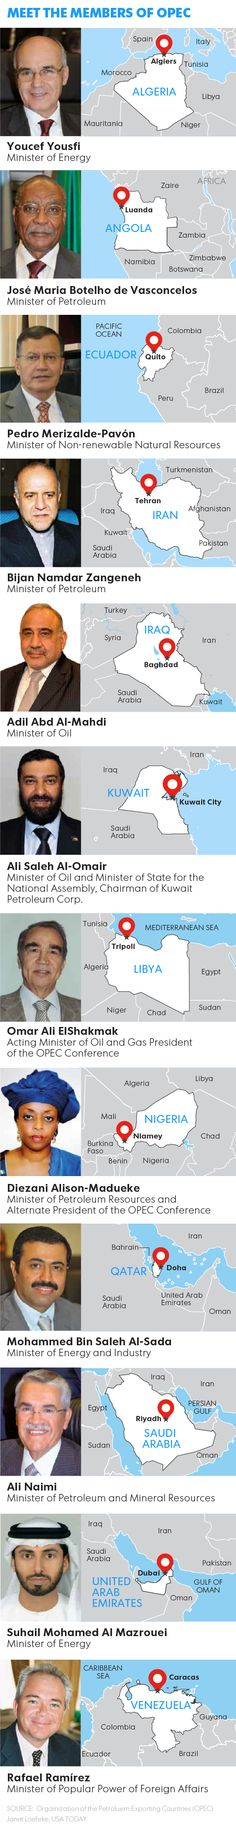 Infographic: Meet the Organization of Petroleum Exporting Countries (OPEC) members